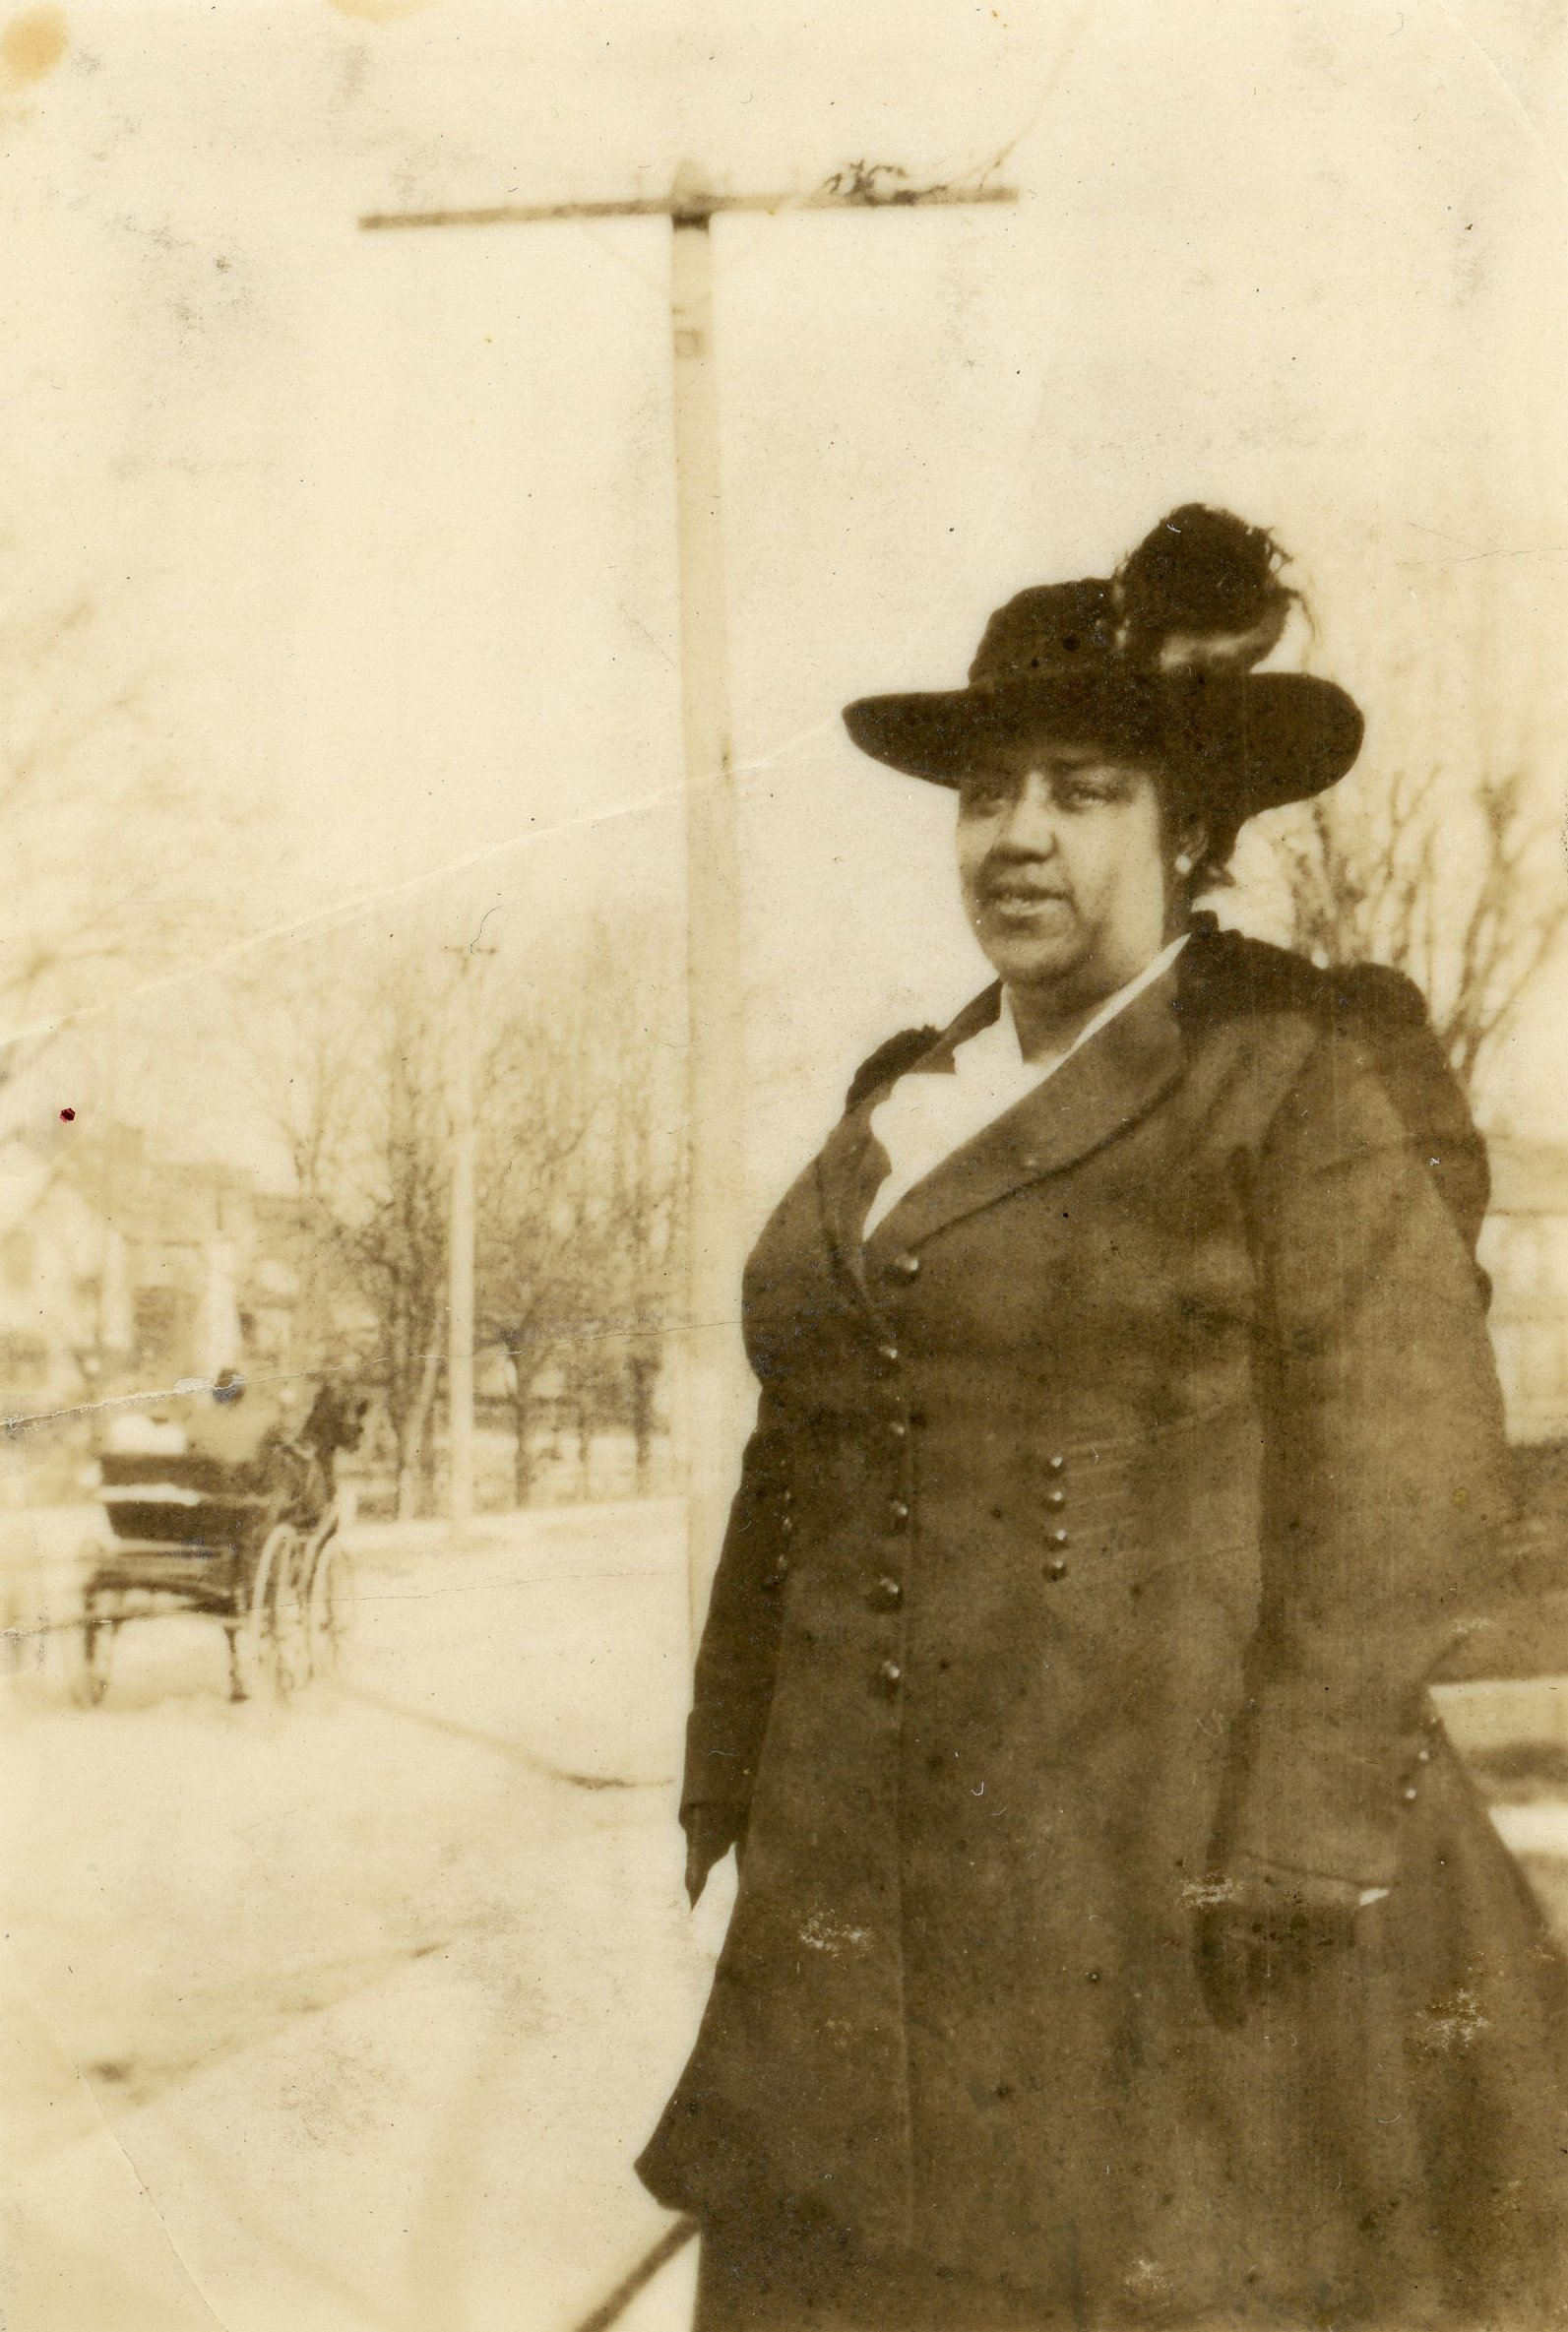 Millie Lawson Bethell Paxton